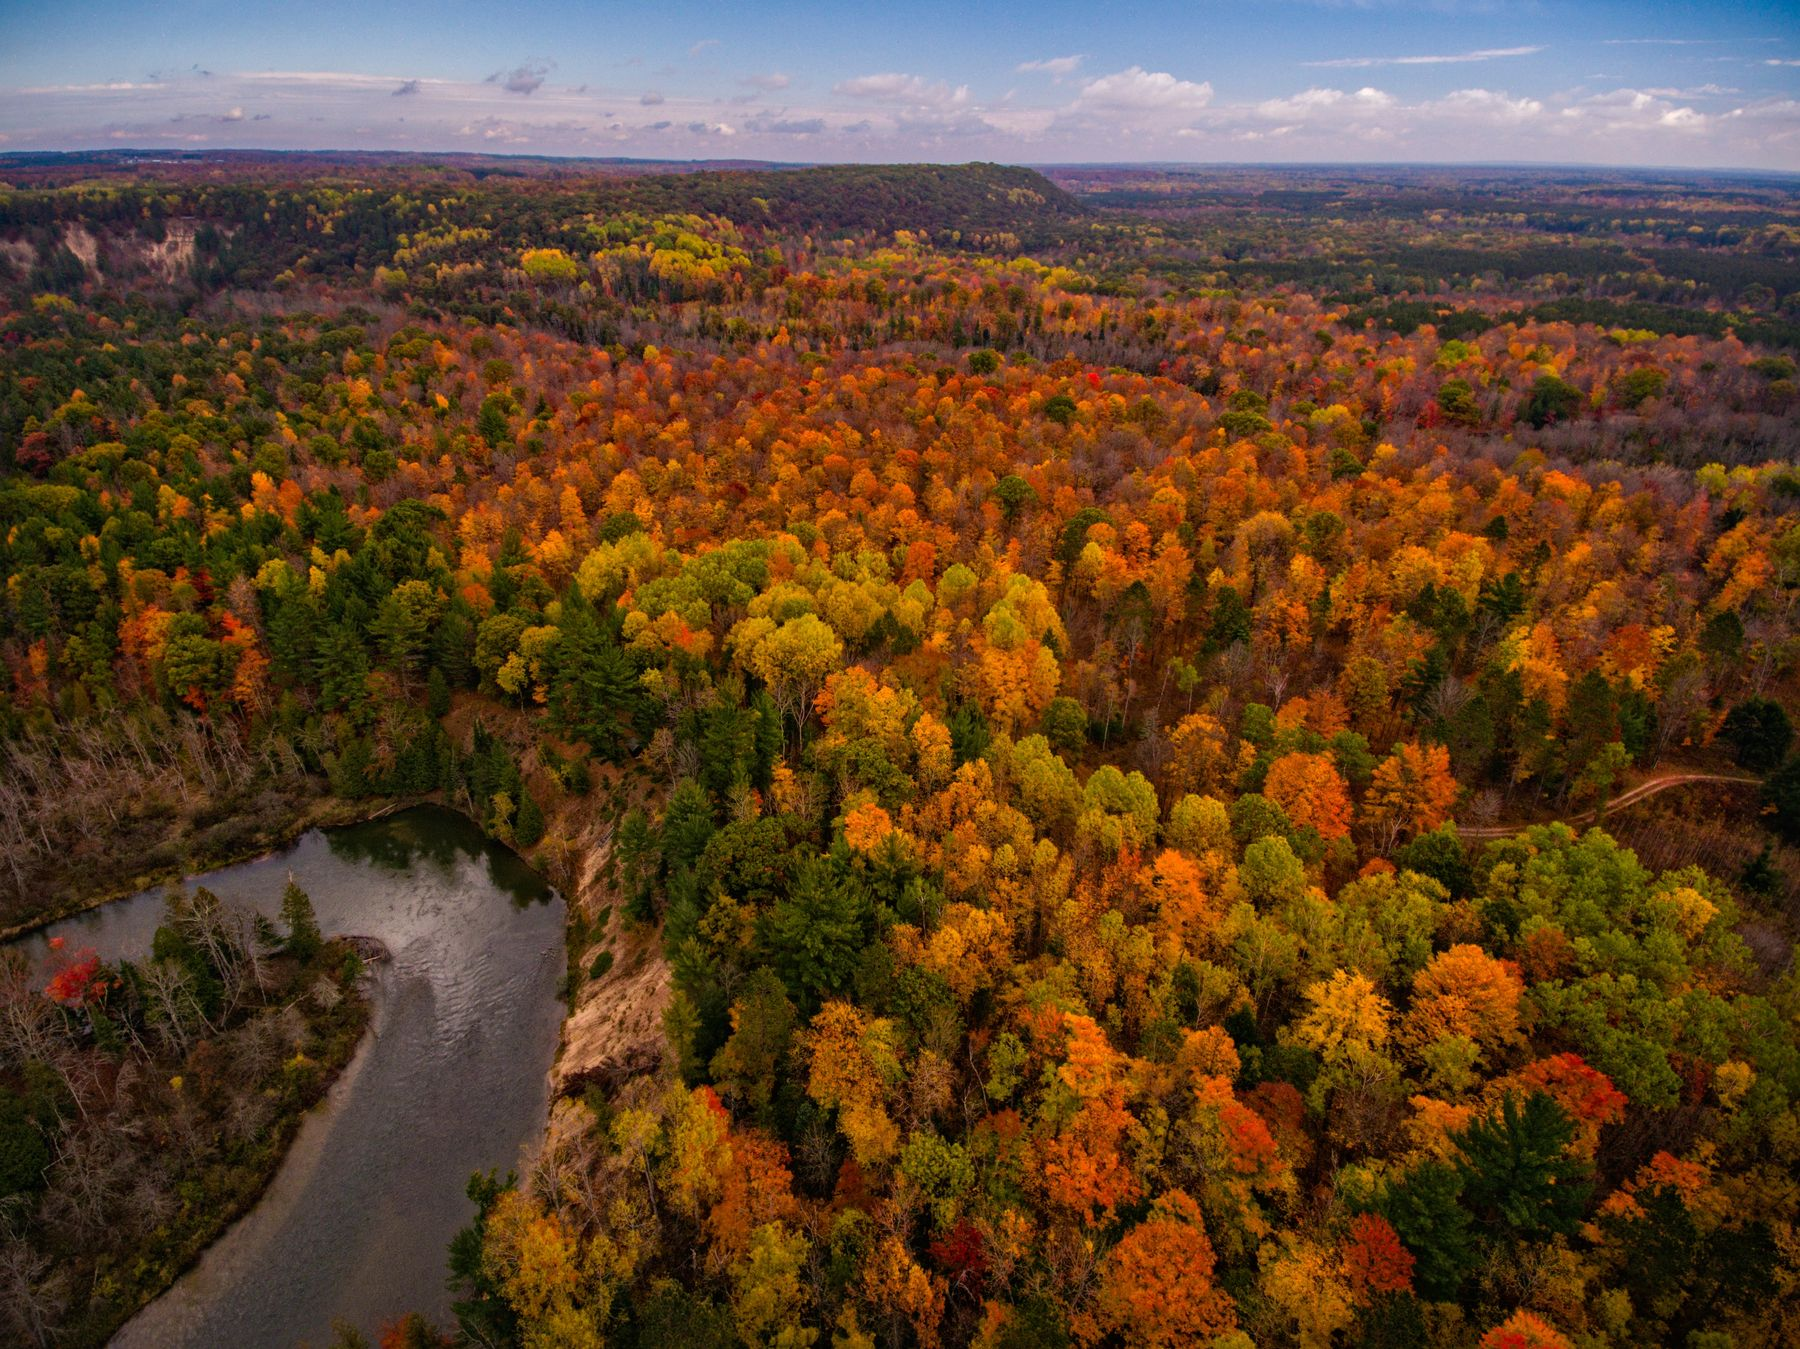 aerial view of forest with fall colors